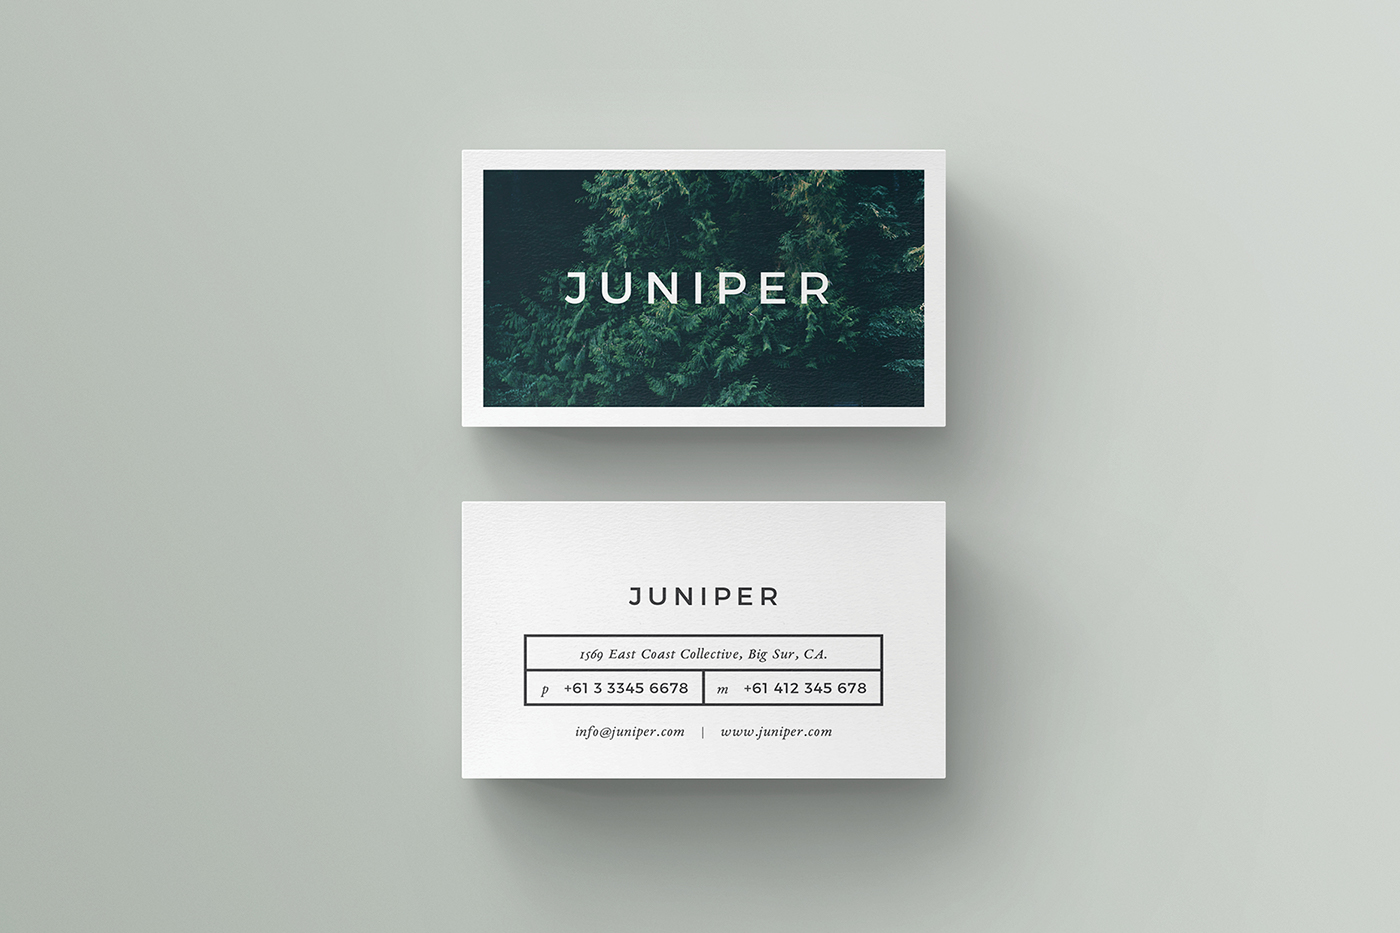 J U N I P E R Business Card on Behance